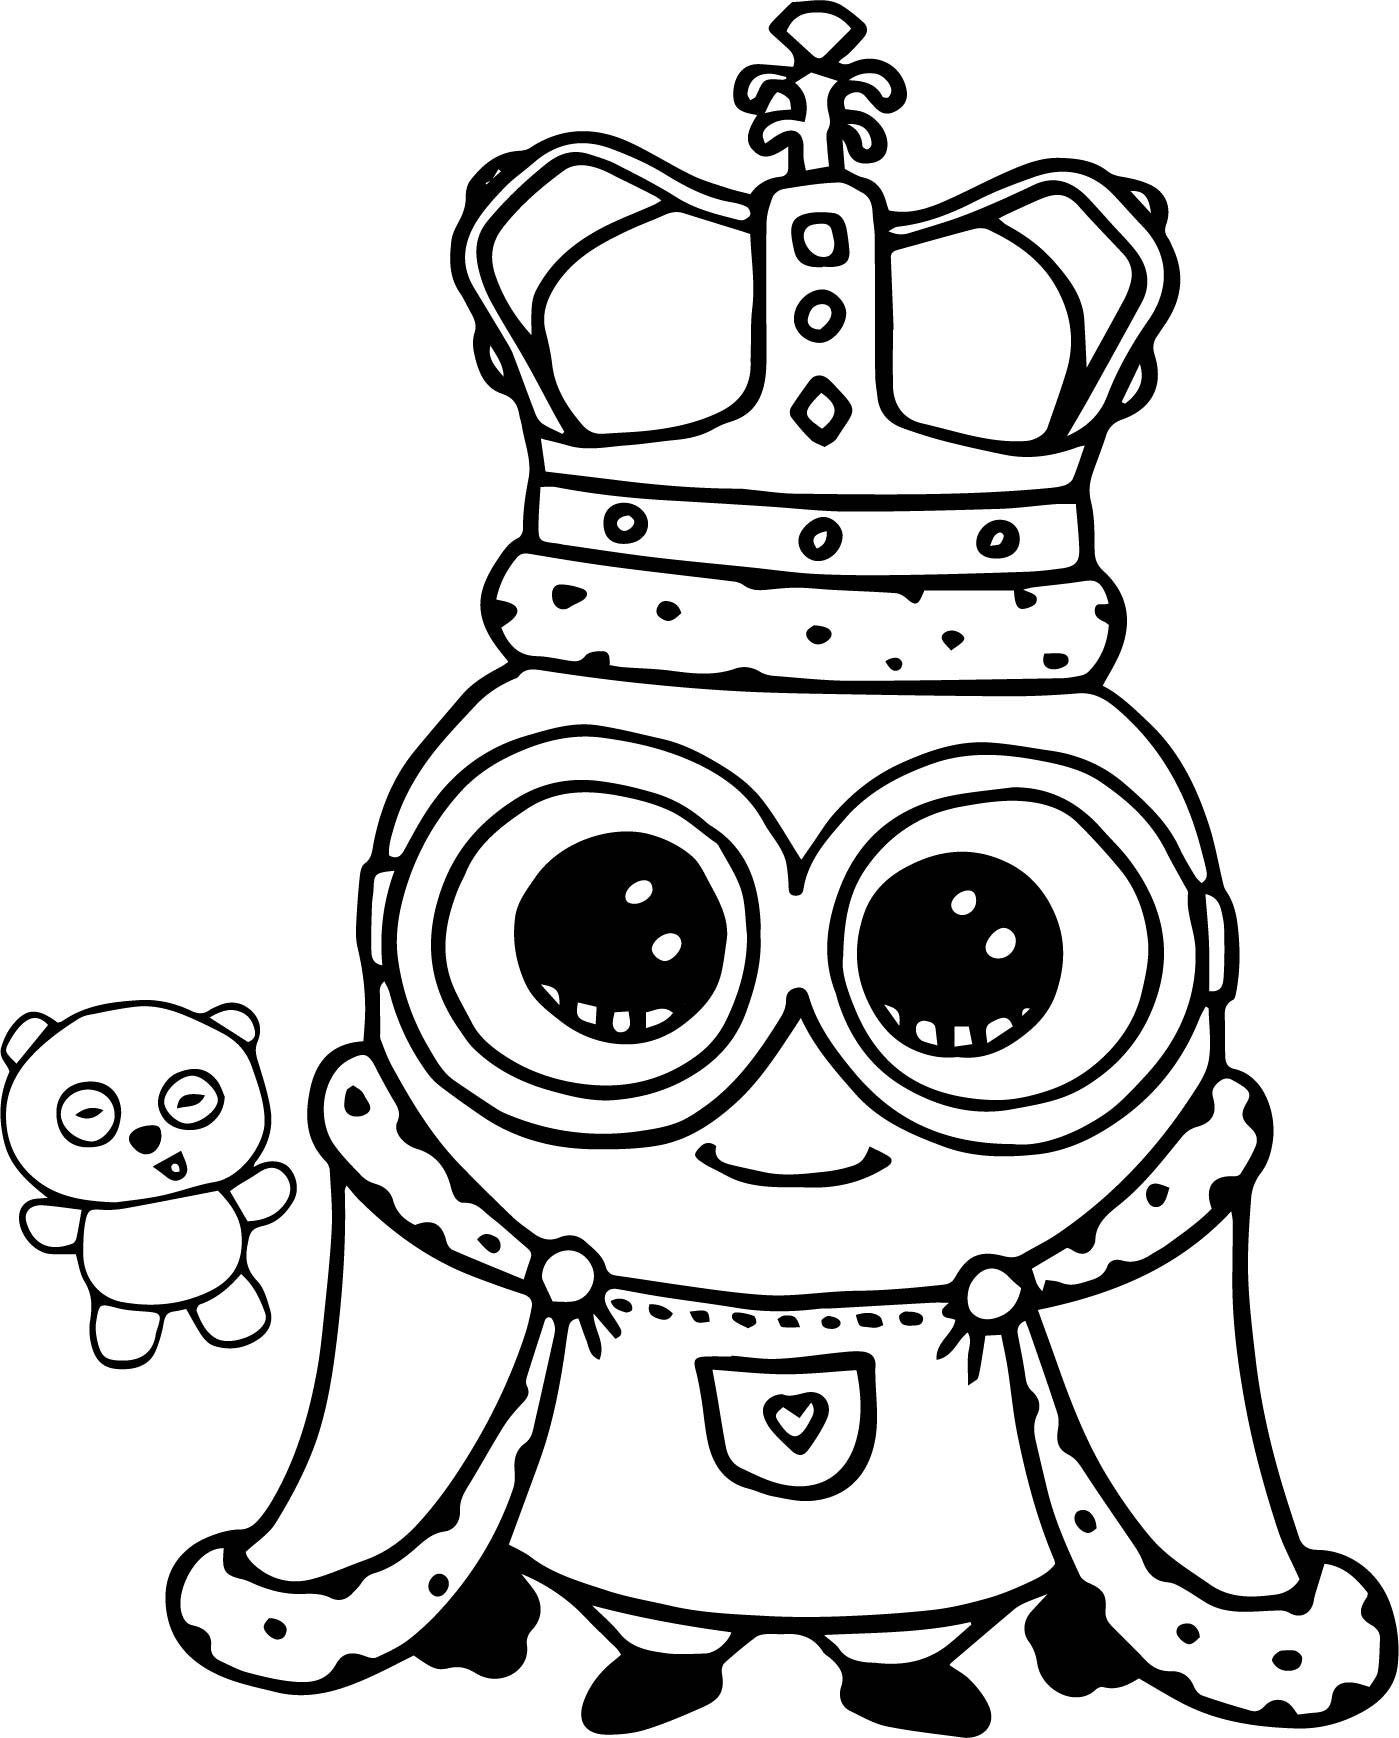 cute coloring sheets cute coloring pages getcoloringpagescom cute sheets coloring